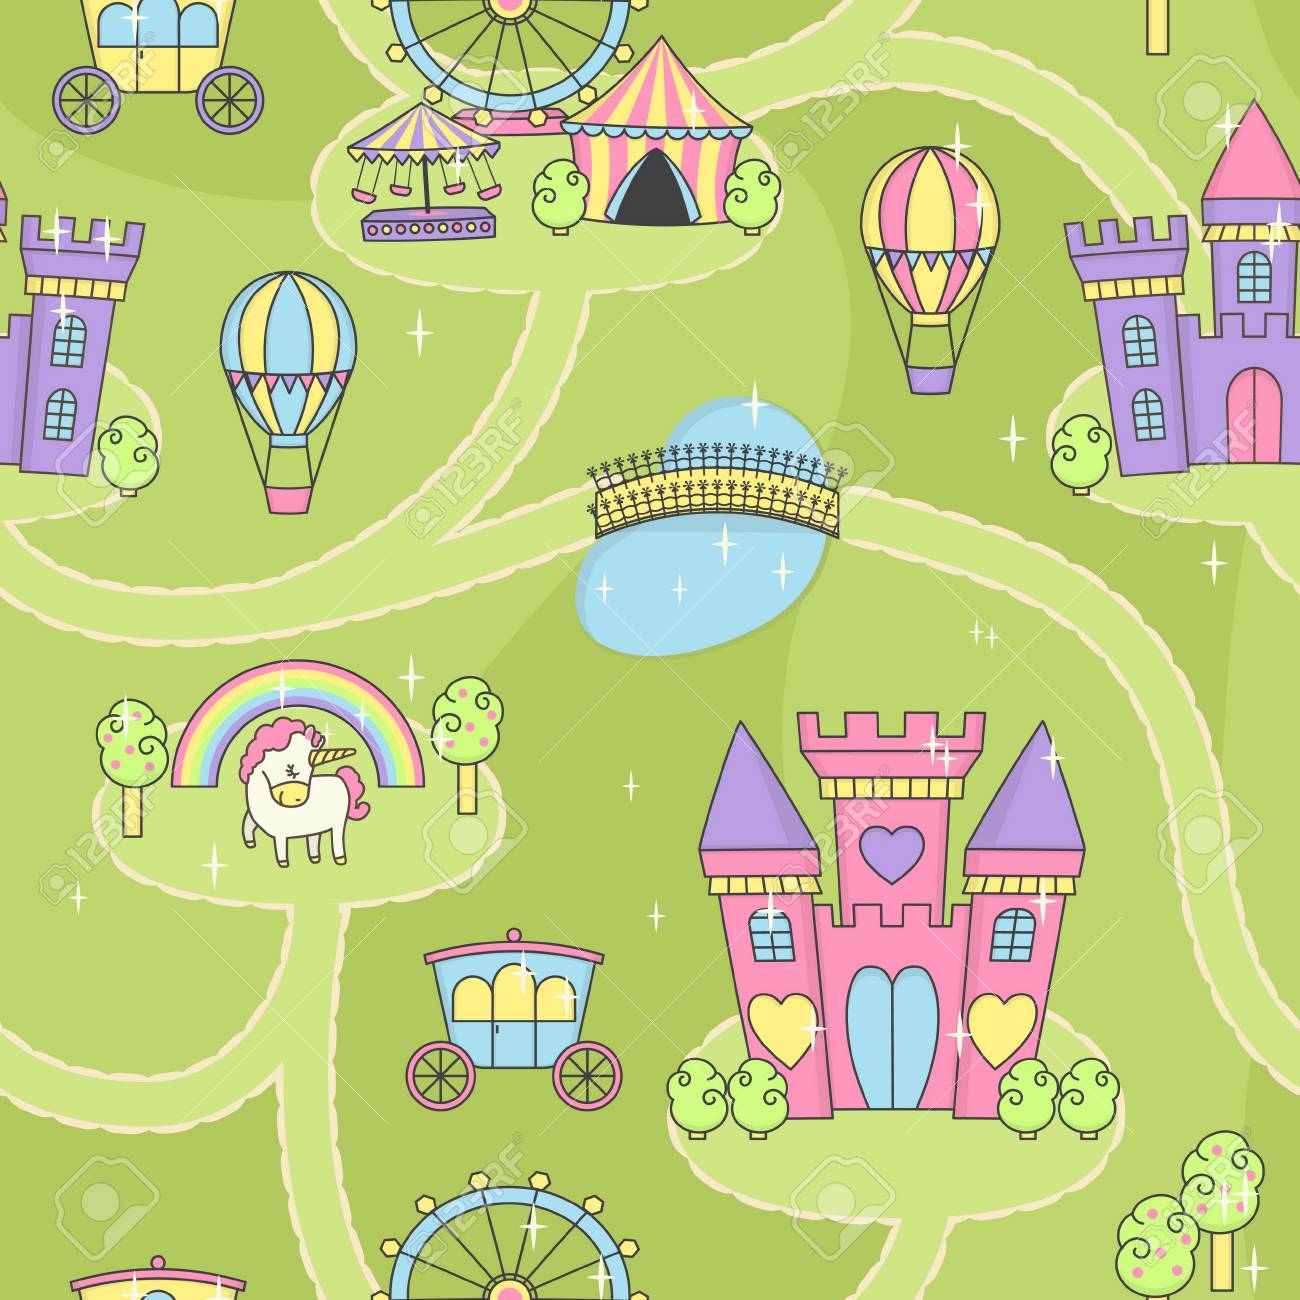 Fantasy fairy tale world princess castle play mat activity game fantasy fairy tale world princess castle play mat activity game for girls daydream imagination story publicscrutiny Image collections